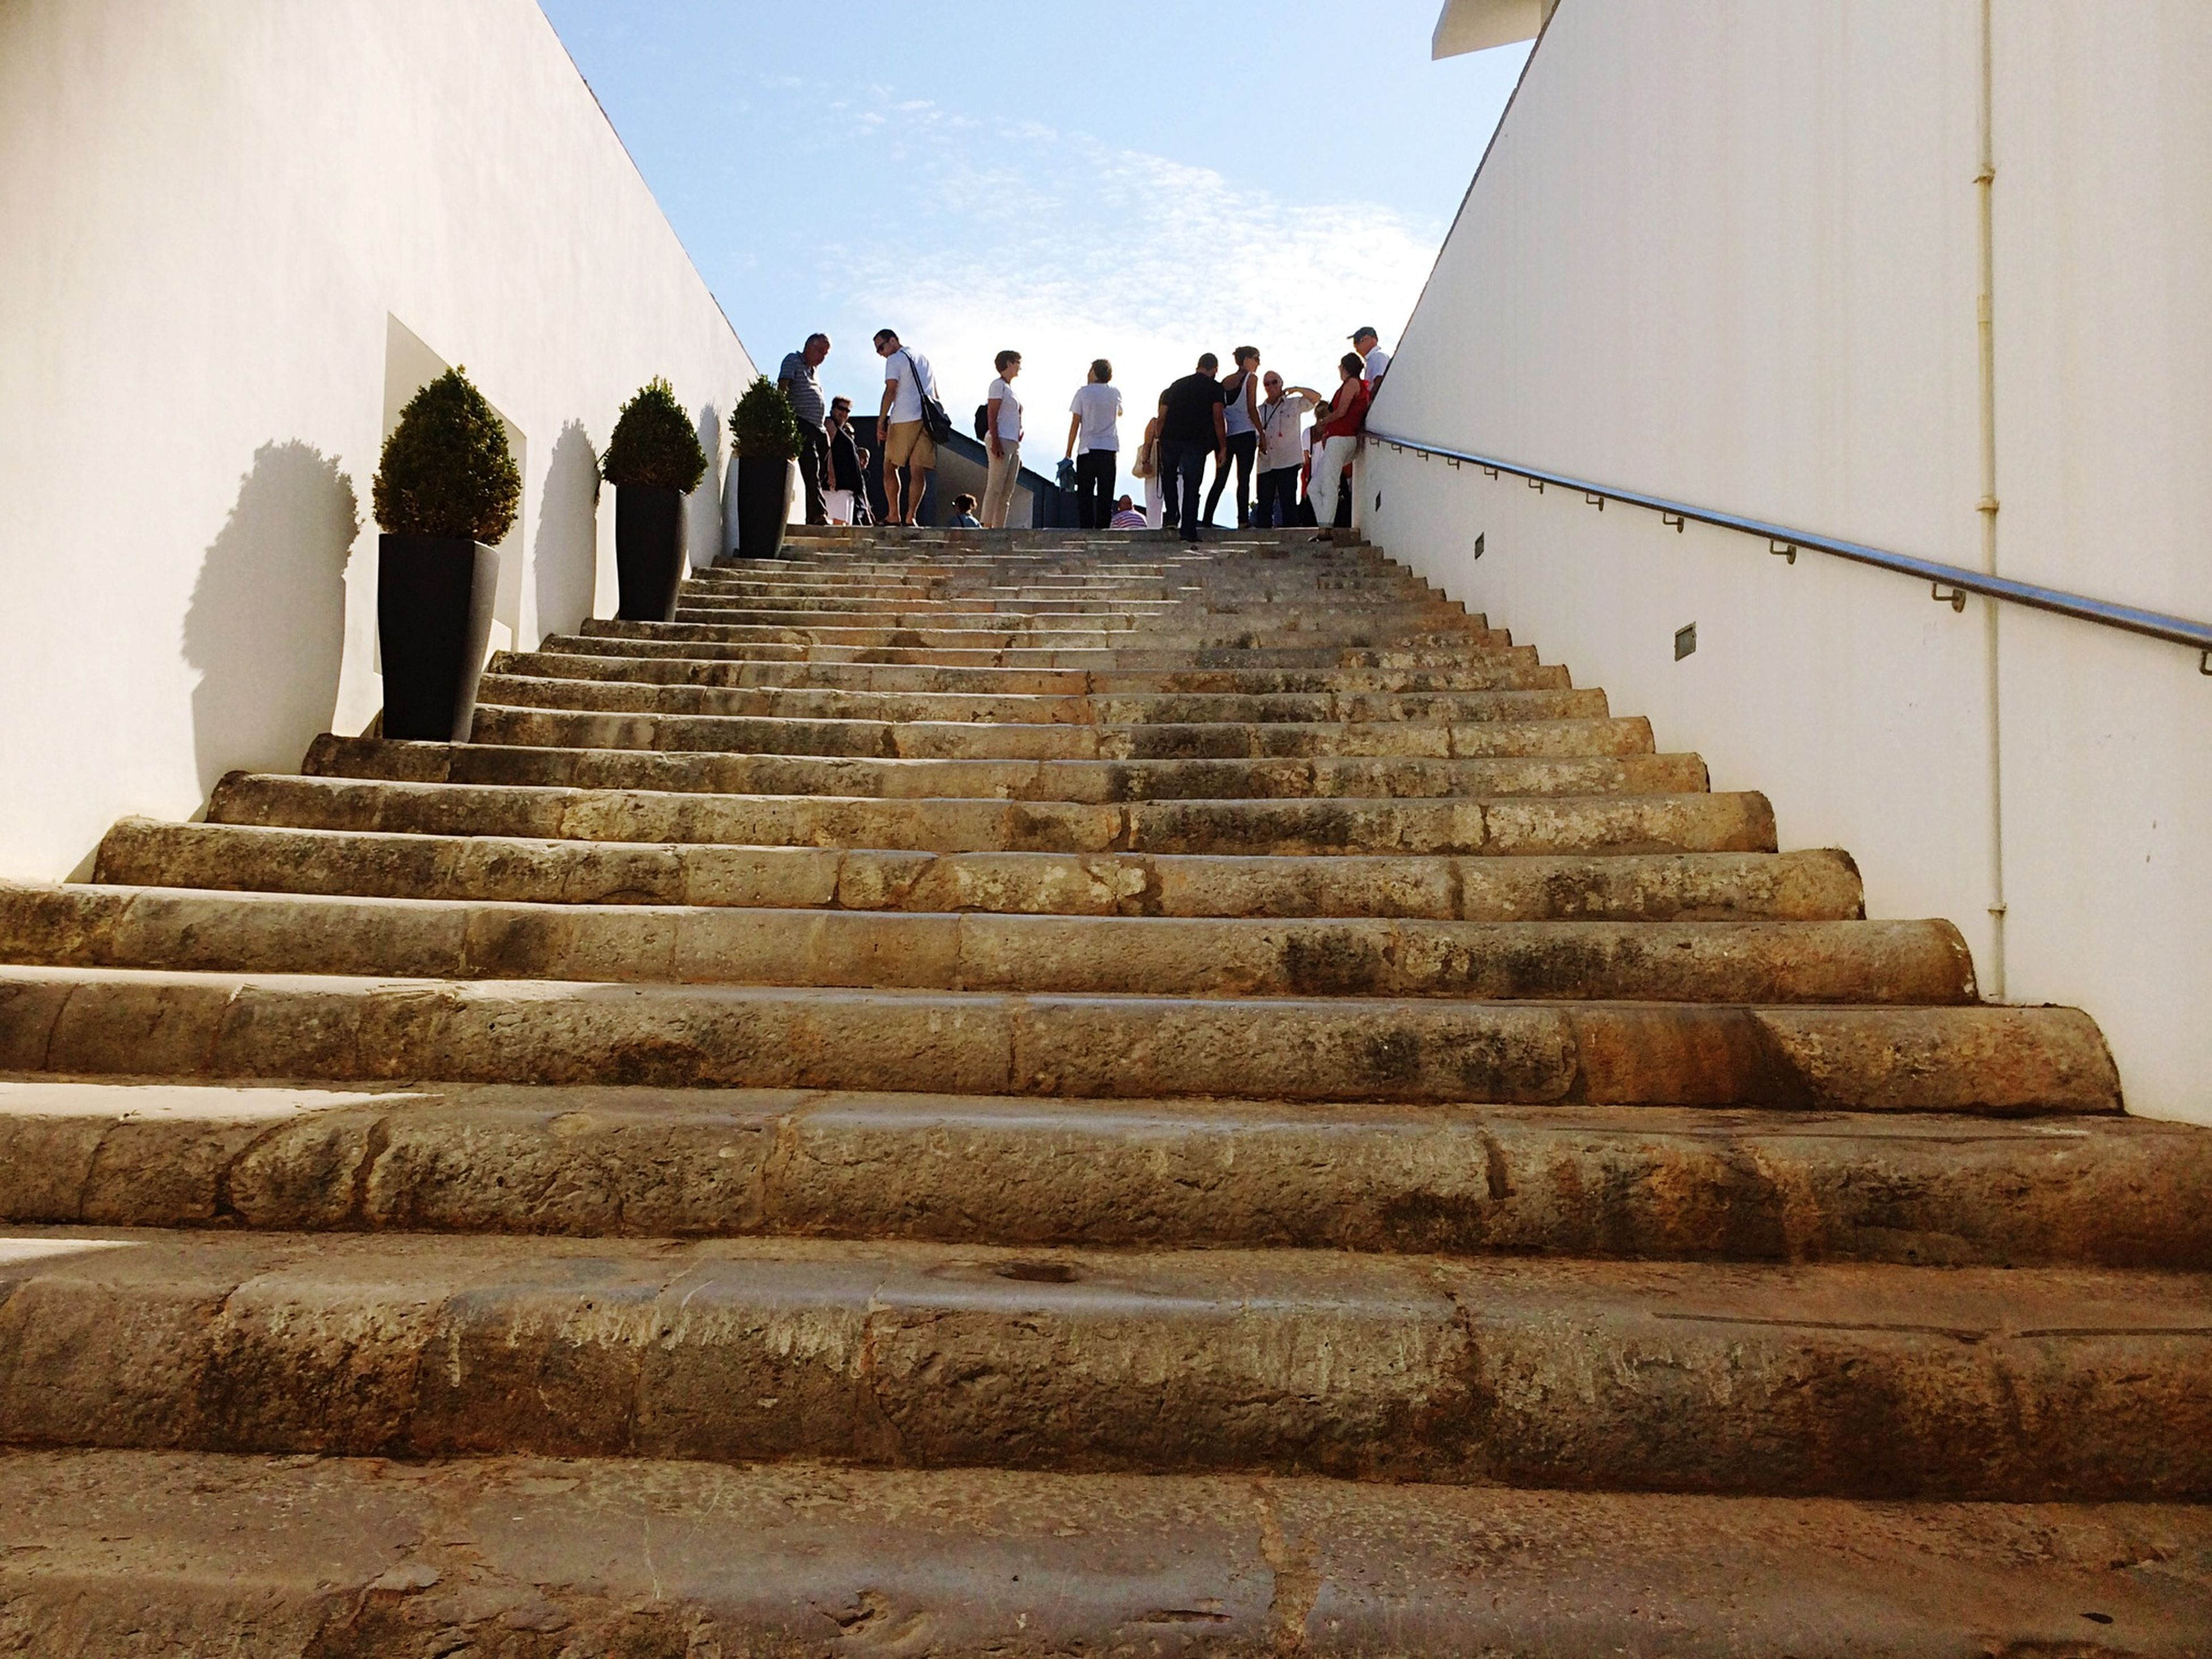 steps, steps and staircases, architecture, built structure, staircase, the way forward, building exterior, low angle view, stairs, railing, diminishing perspective, sunlight, history, famous place, sky, travel destinations, day, in a row, tourism, travel